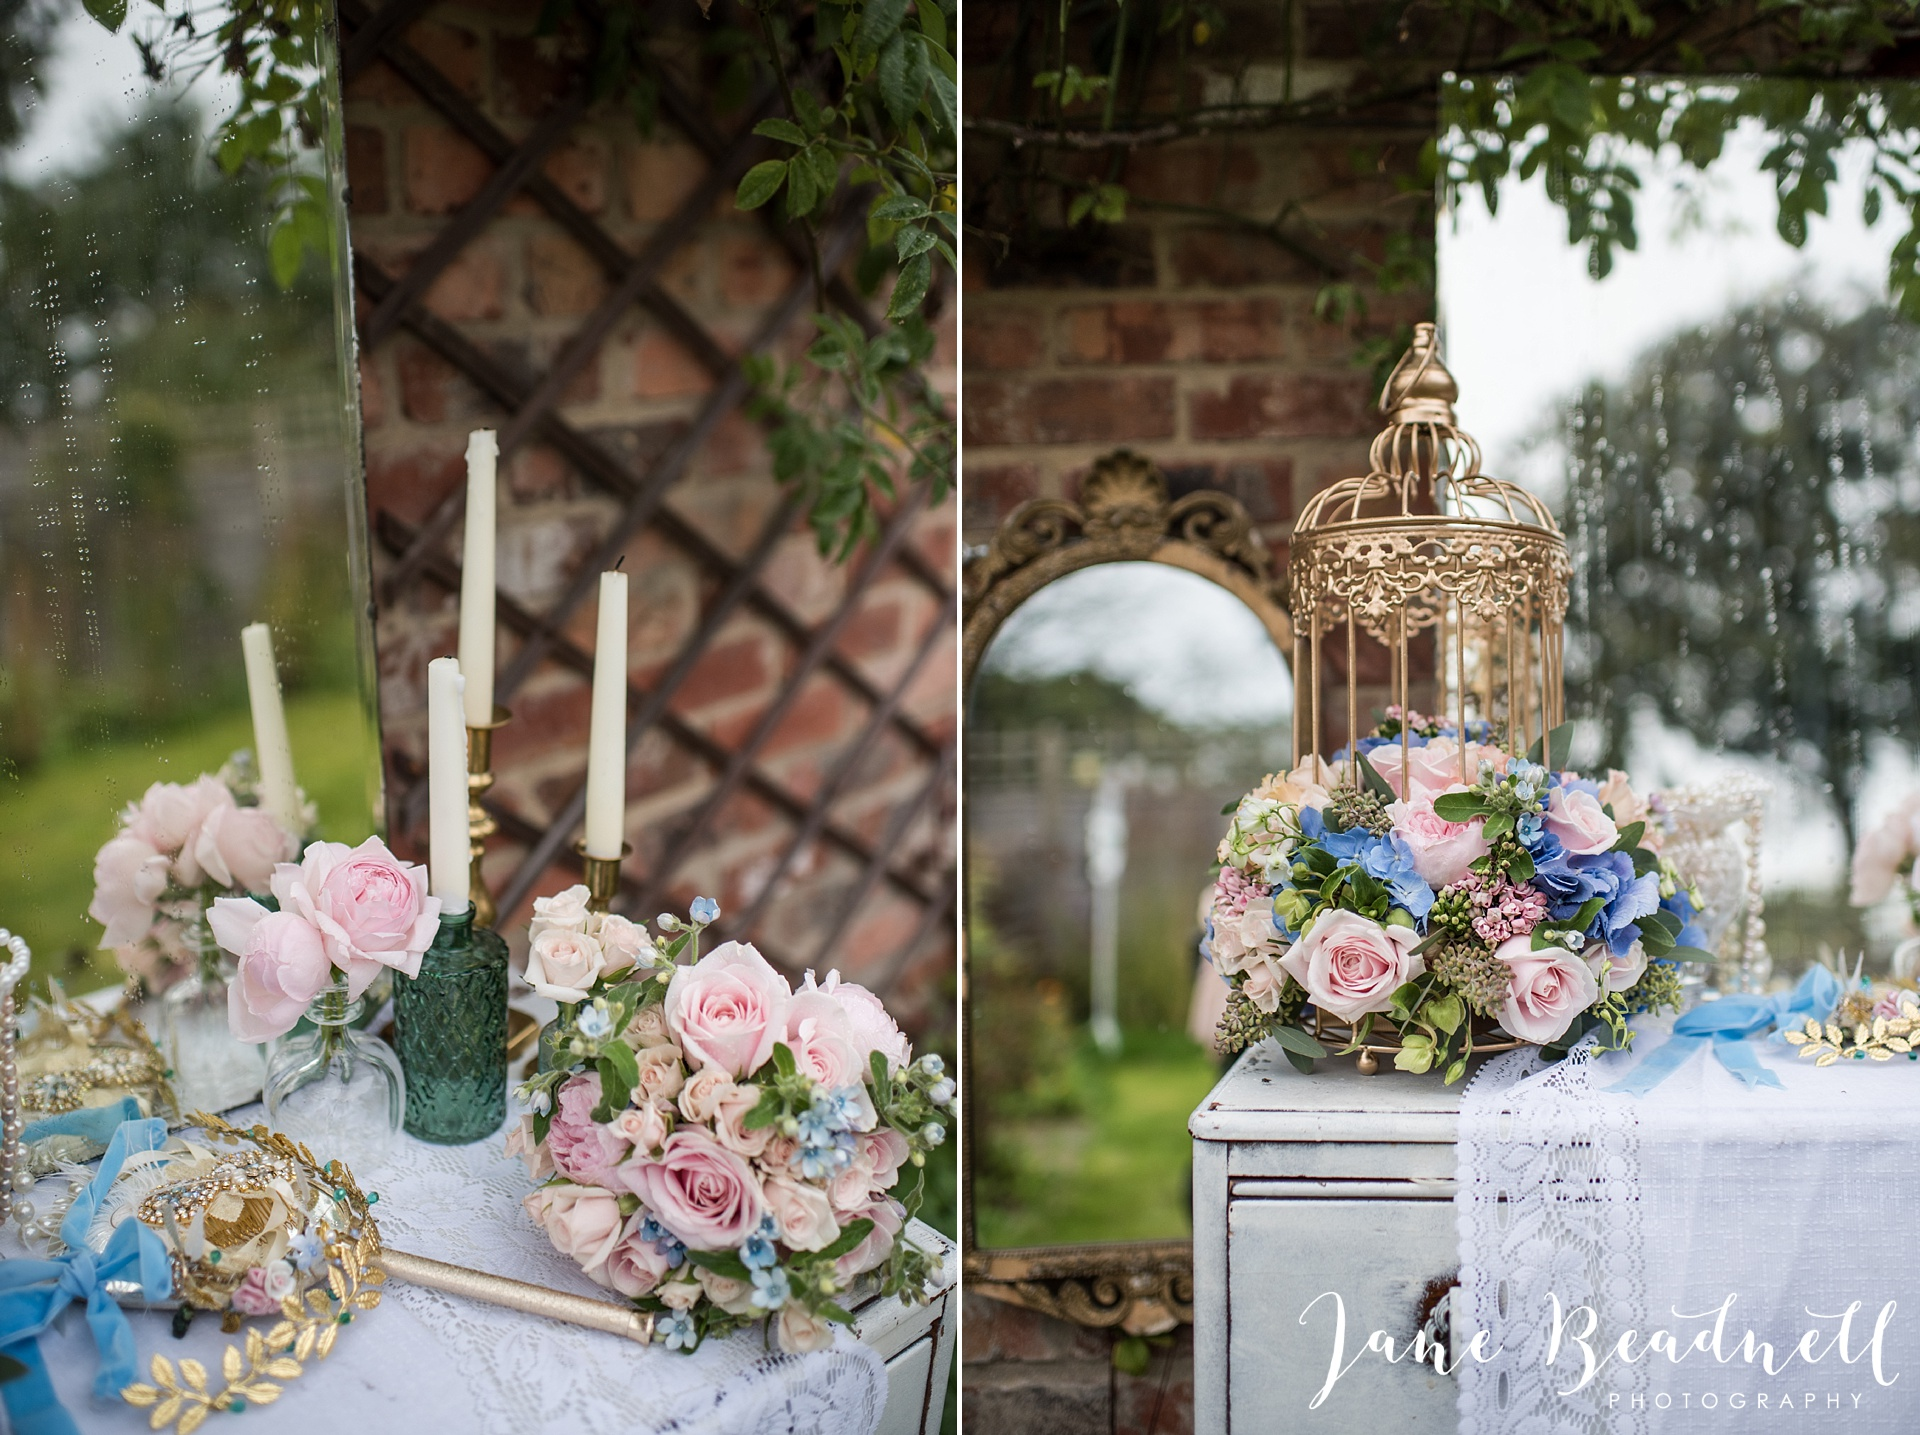 fine-art-wedding-photographer-jane-beadnell-photography-yorkshire-wedding-photographer_0015